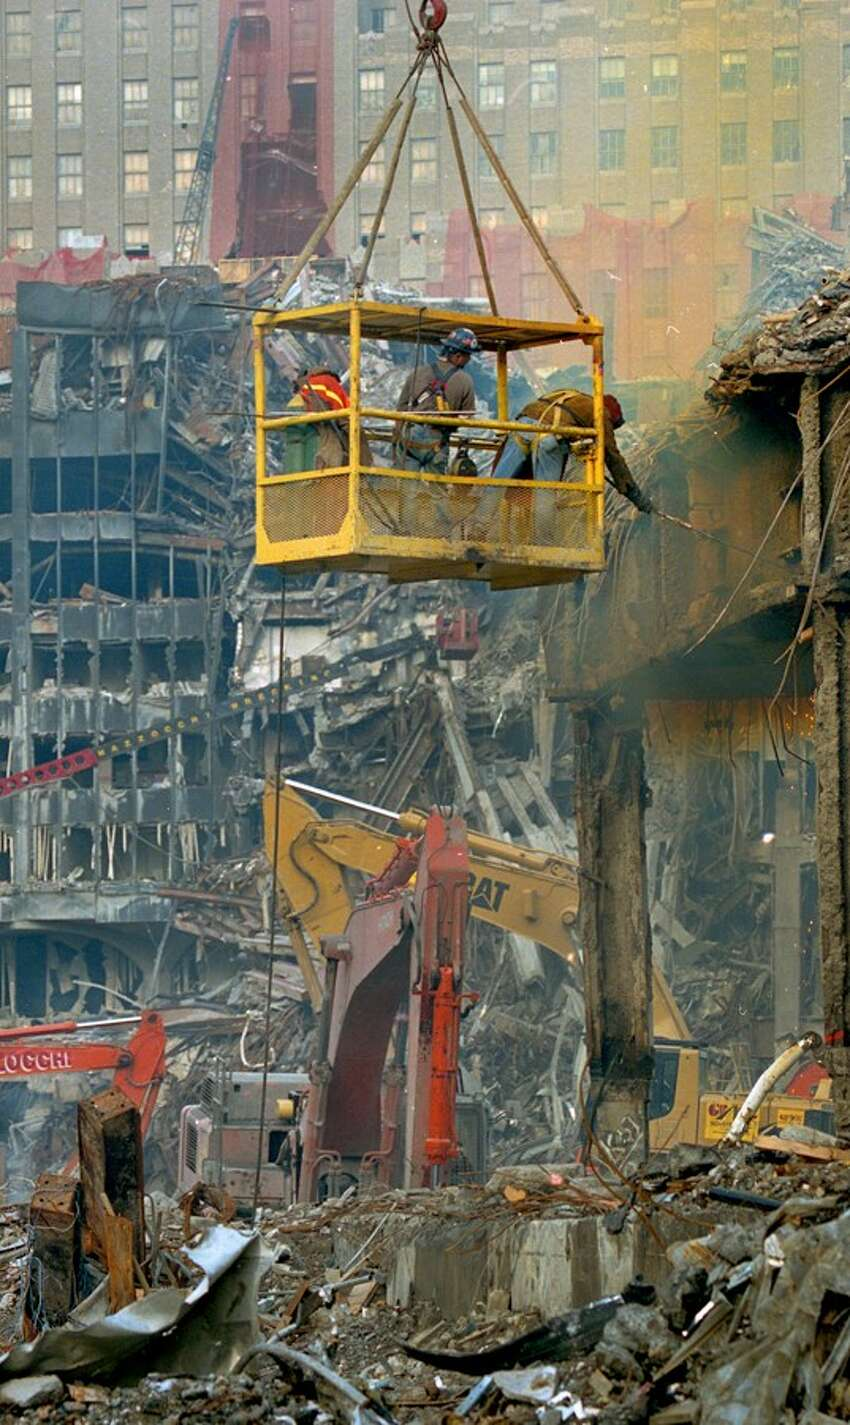 Earl Dotter documented search-and-recovery efforts at Ground Zero following 9/11.